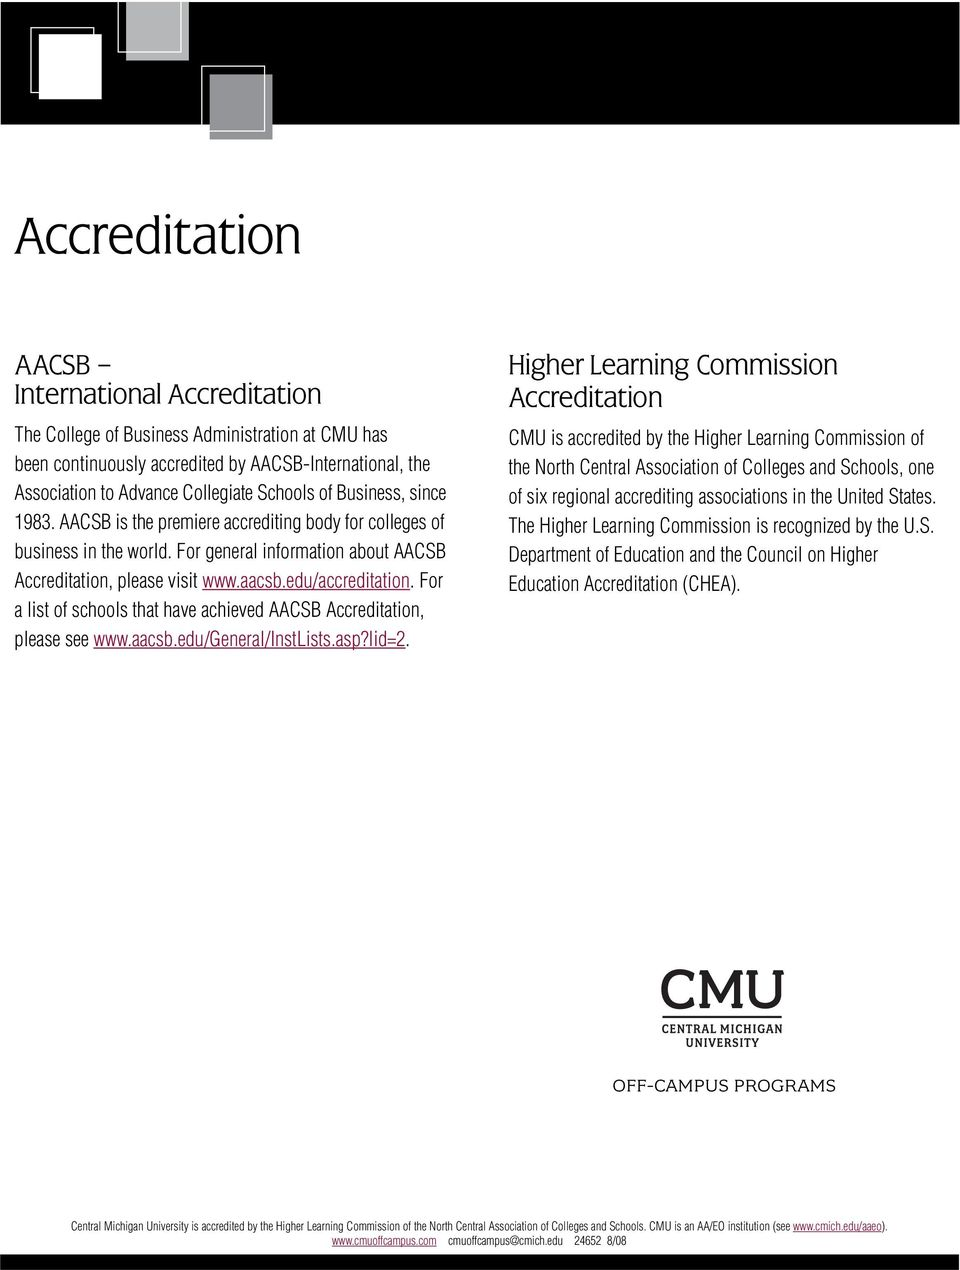 For a list of schools that have achieved AACSB Accreditation, please see www.aacsb.edu/general/instlists.asp?lid=2.